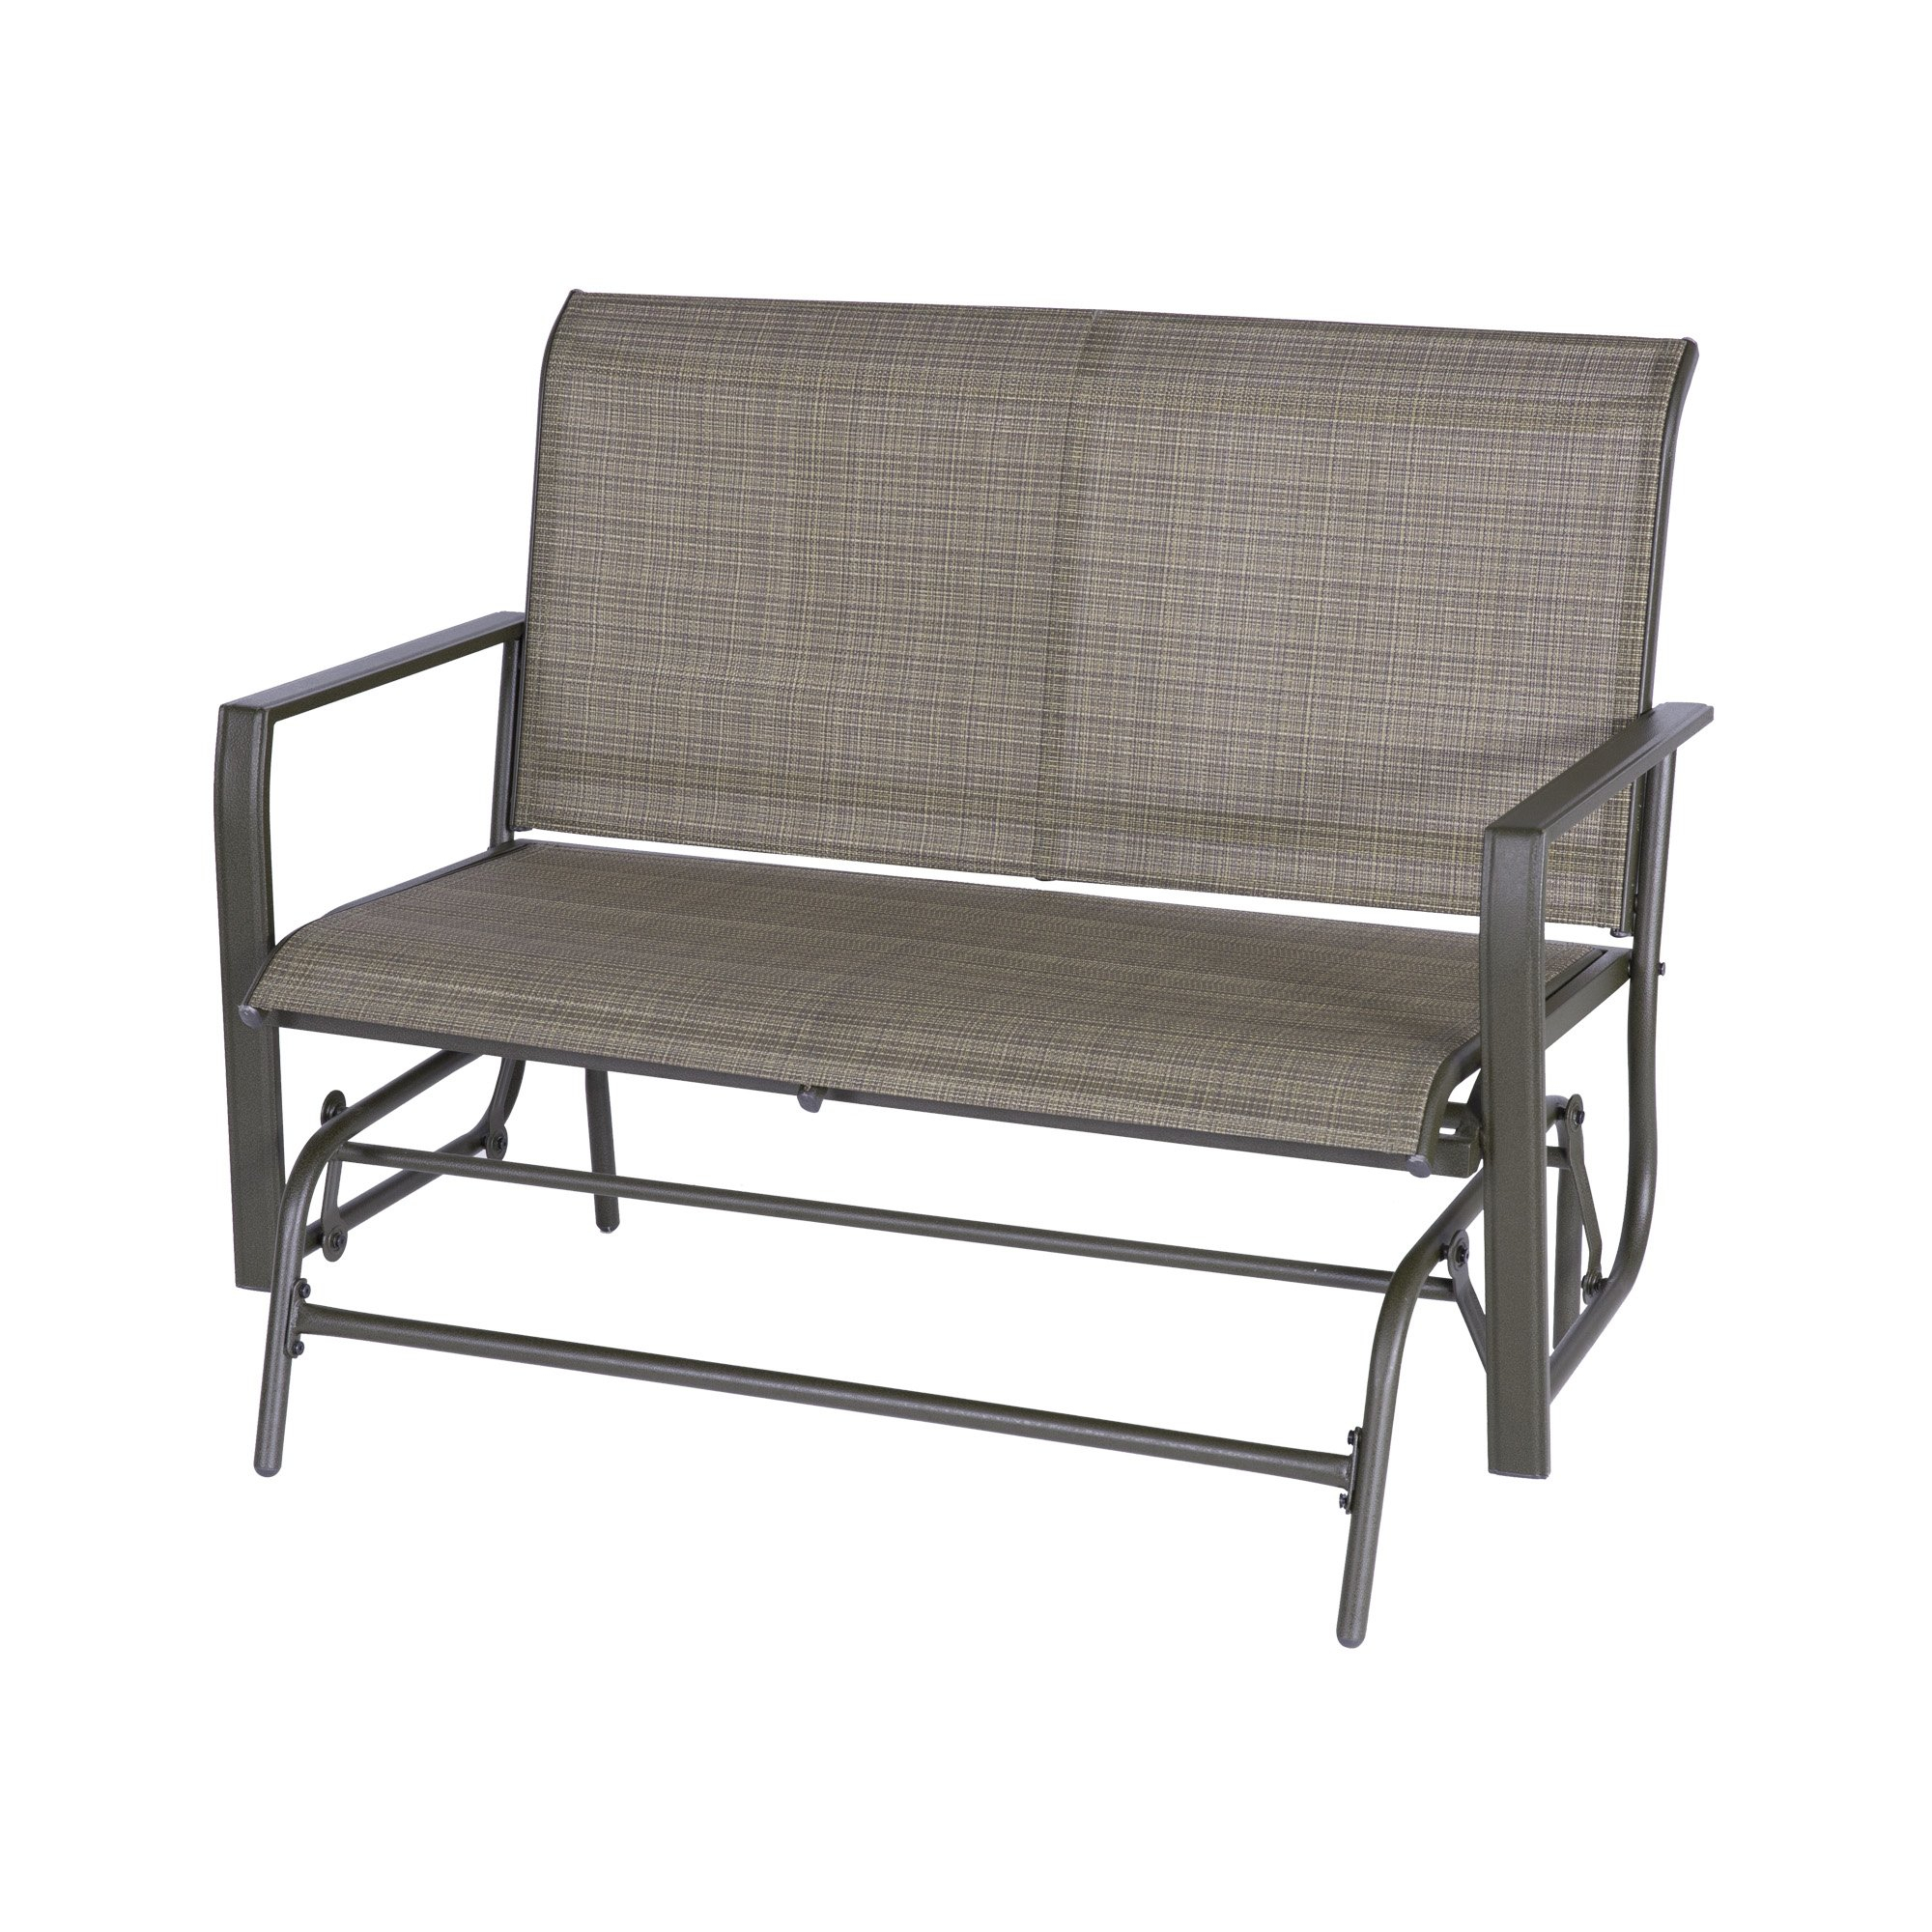 Patio Glider Bench Loveseat Outdoor Cushioed 2 Person In Outdoor Steel Patio Swing Glider Benches (View 16 of 25)